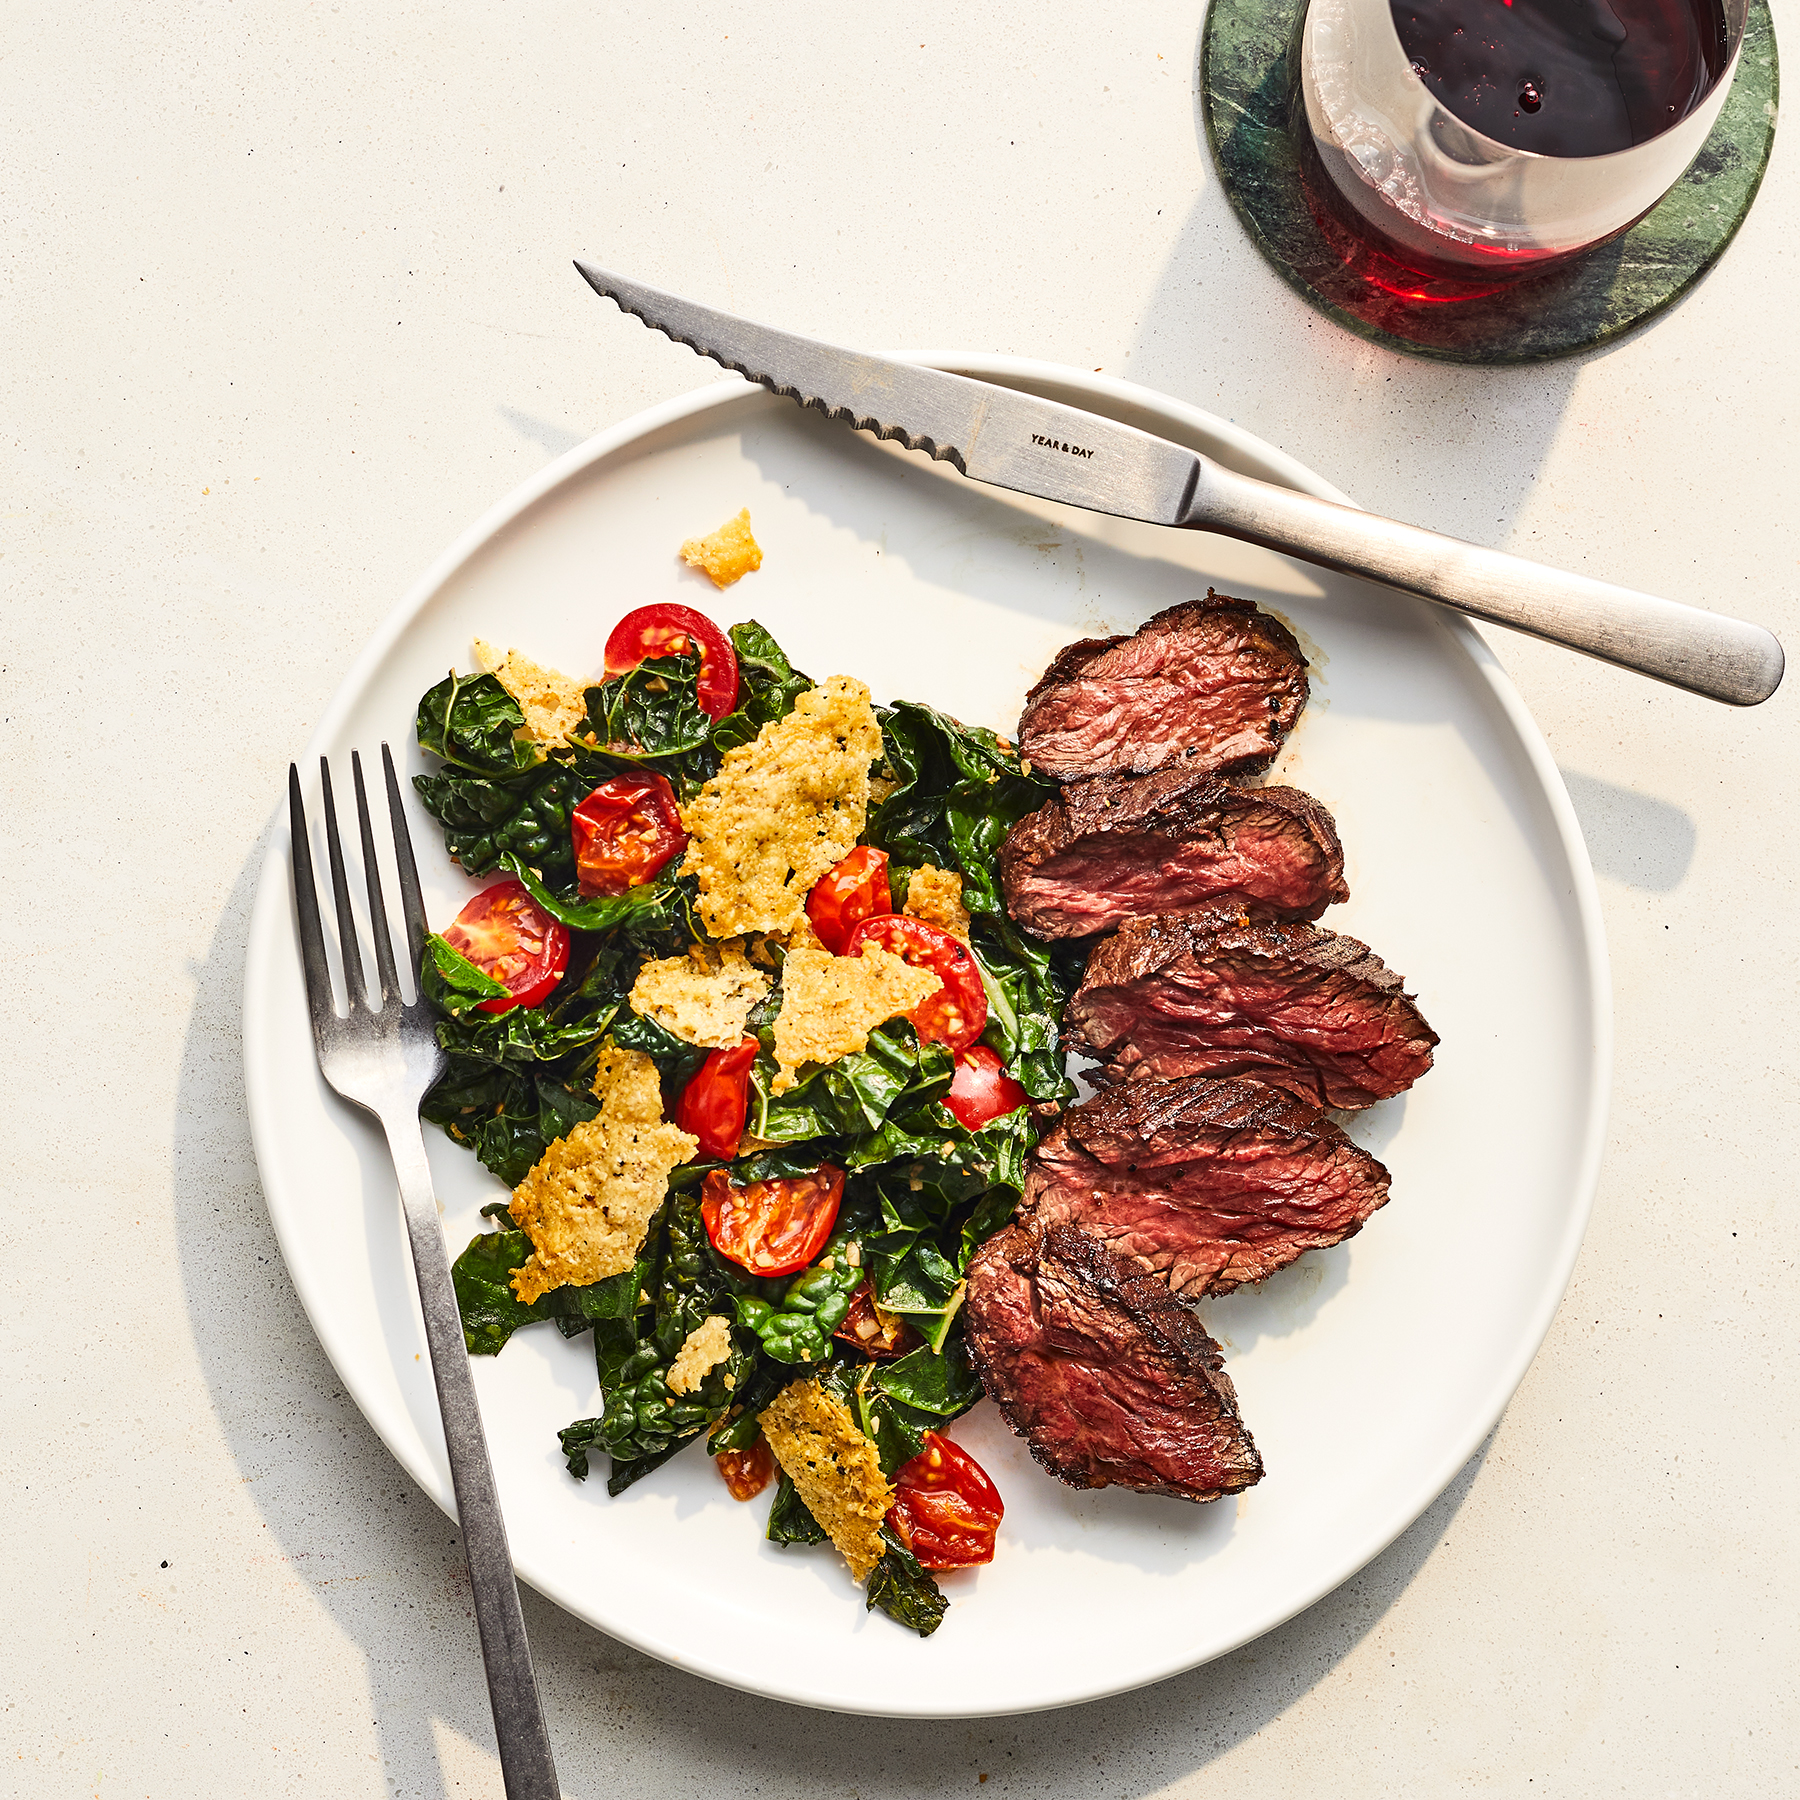 Hanger Steak With Warm Kale and Crispy Cheese Salad